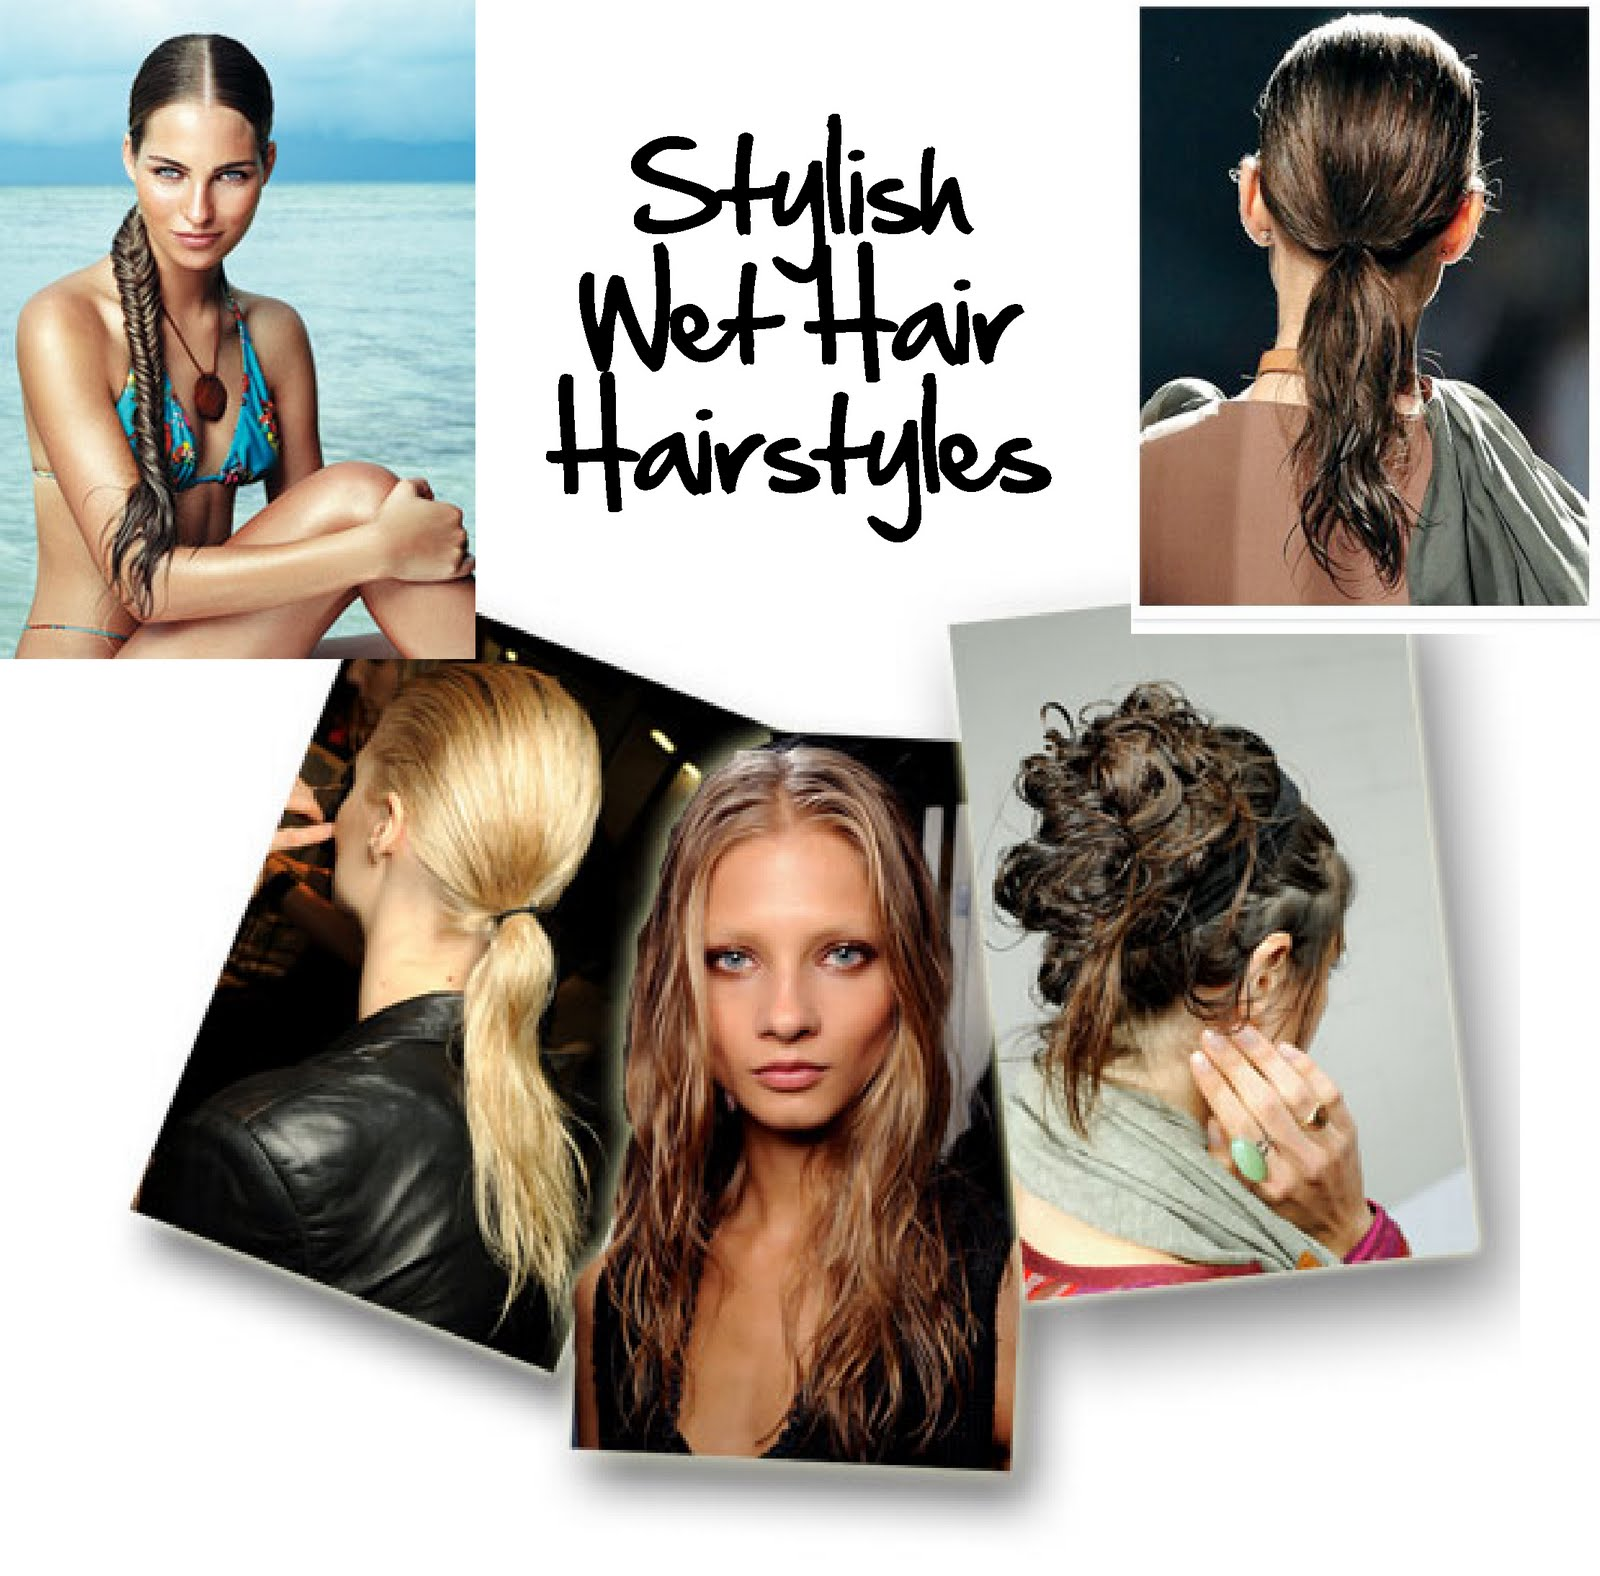 stylish summer beauty tips: wet hair styles | stylelista confessions